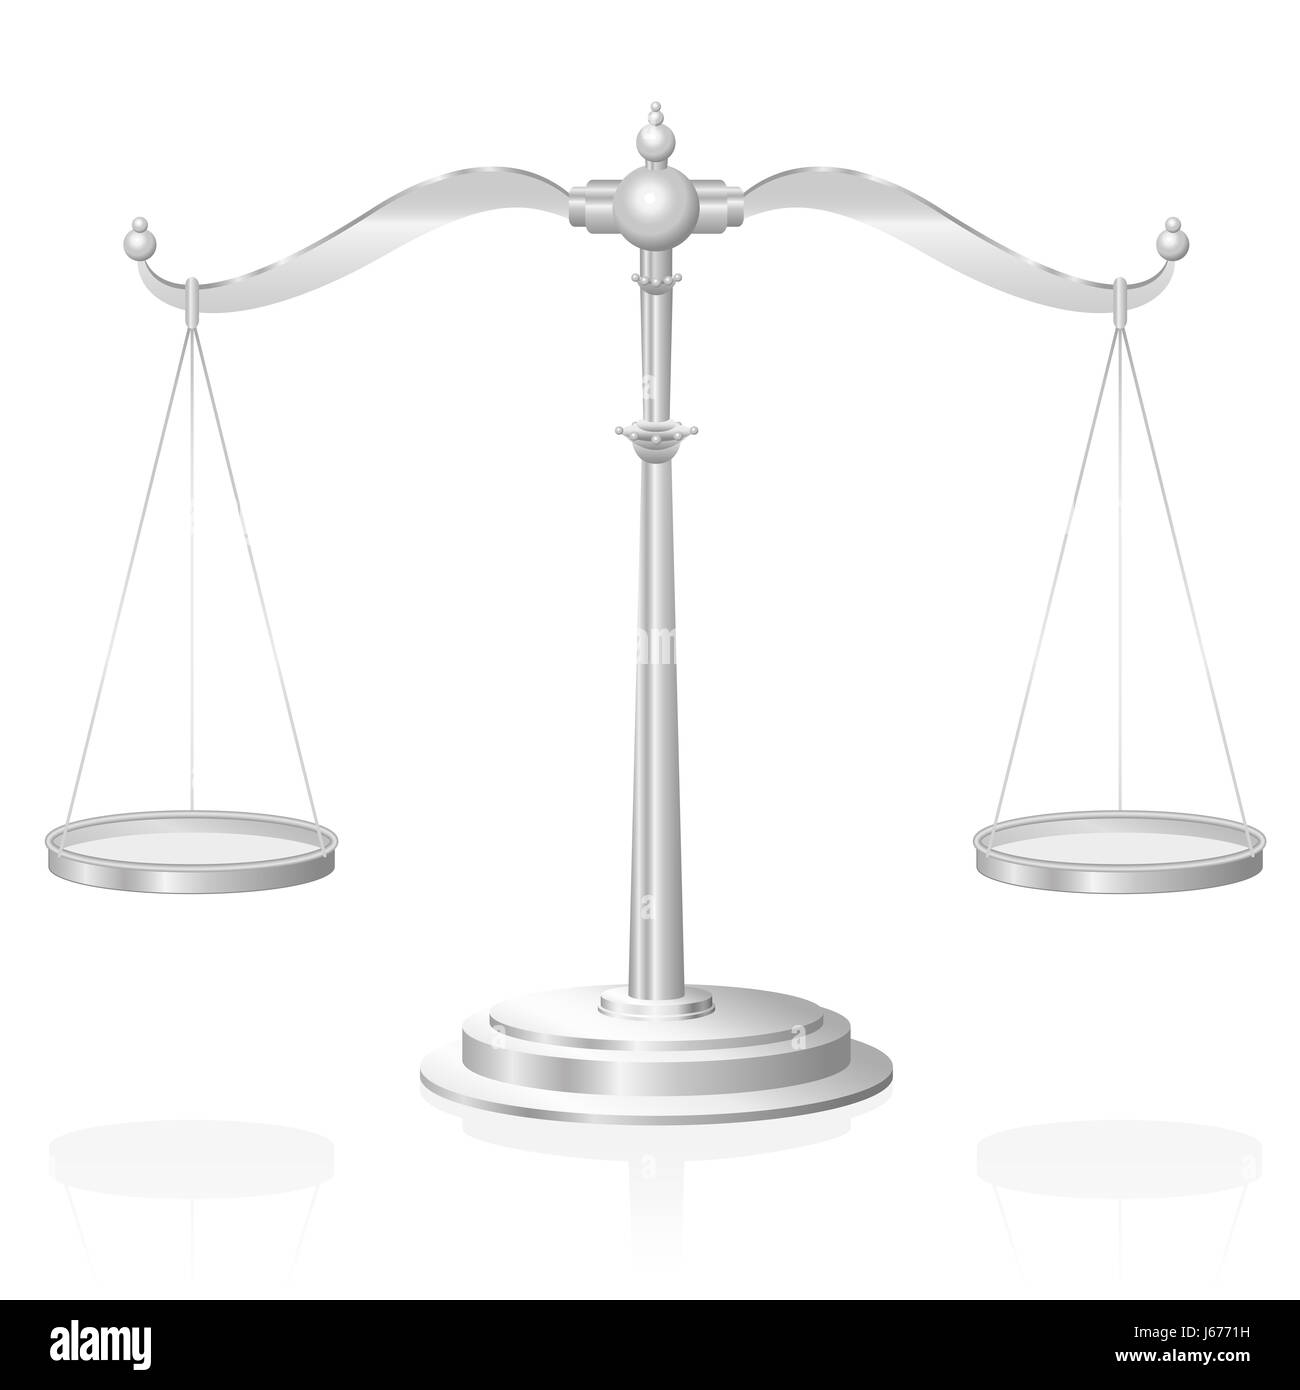 Scale symbol for justice jurisdiction balance and fairness stock scale symbol for justice jurisdiction balance and fairness illustration on white background biocorpaavc Images